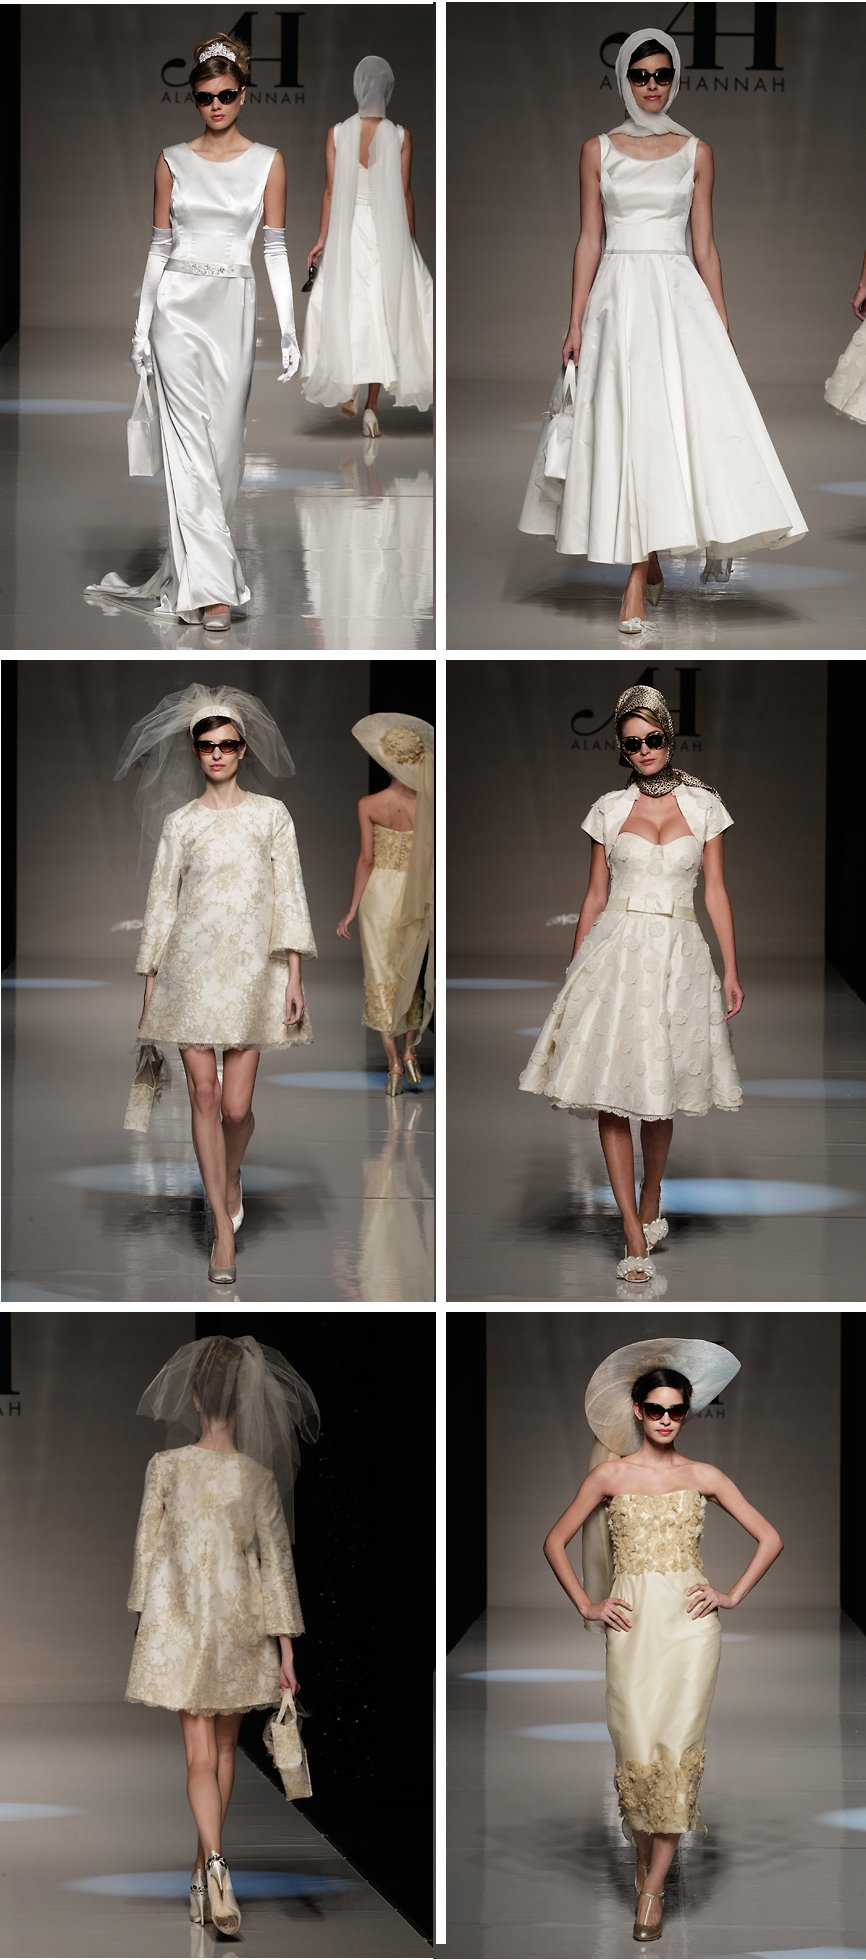 2013-wedding-dress-trends-from-london-60s-chic-bridal-gowns.full